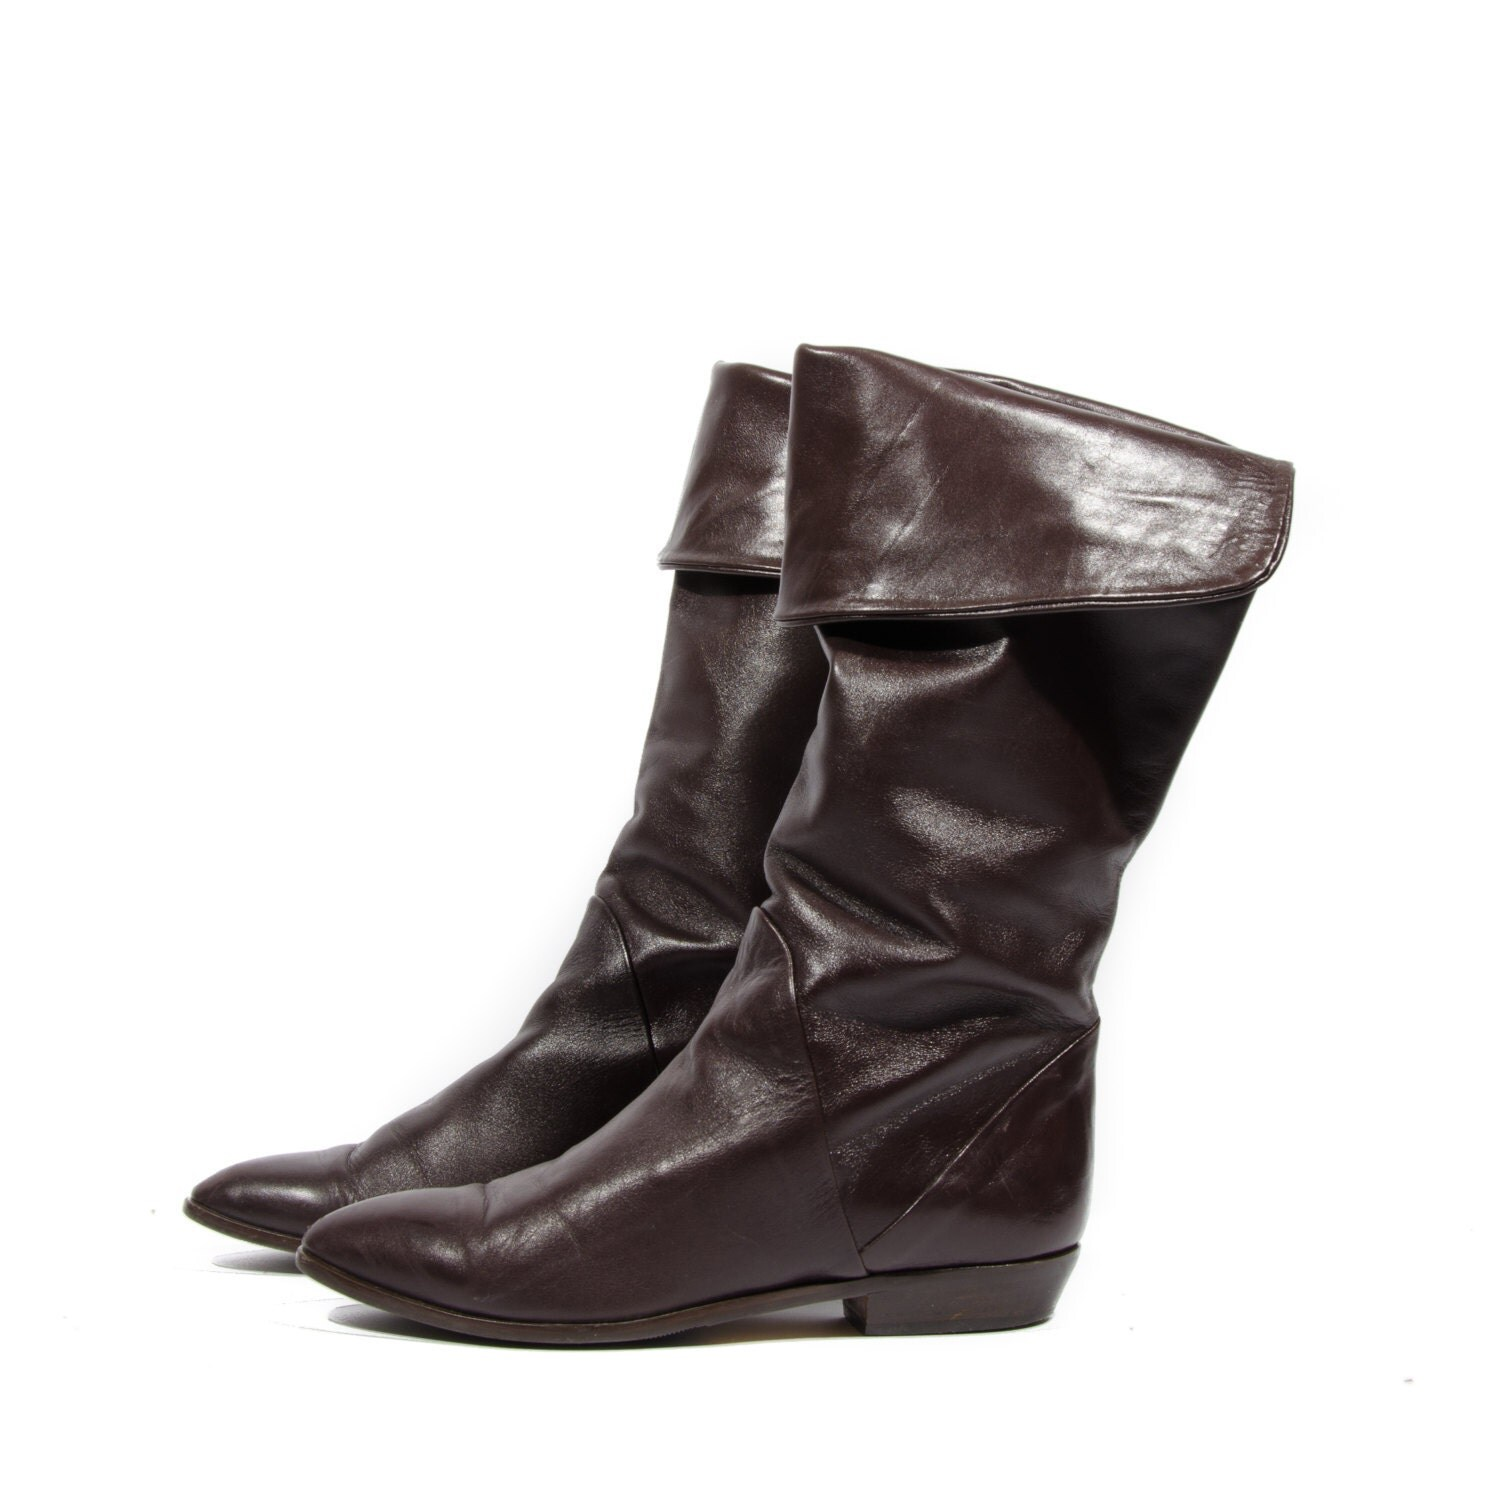 80 s vintage bandolino pirate fashion boots brown leather